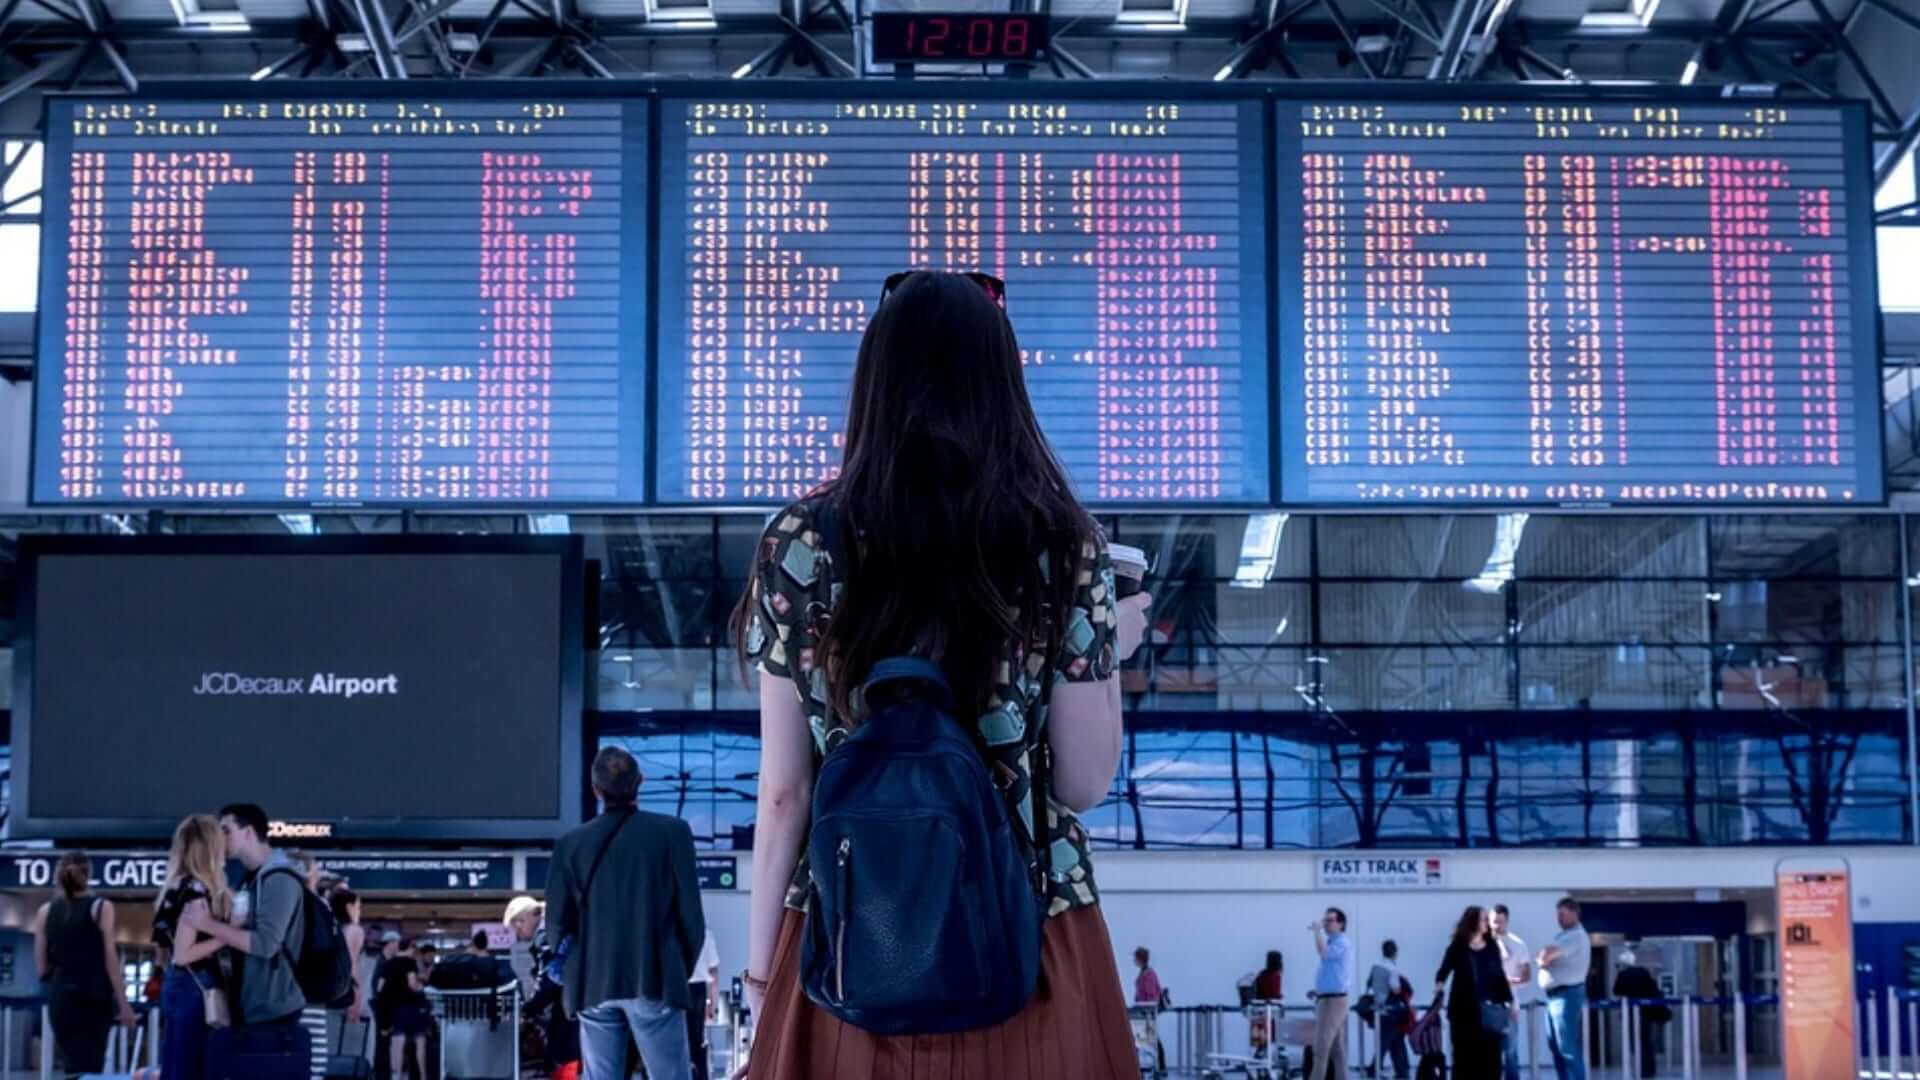 A girl is standing in front of flight information signs on an airport.